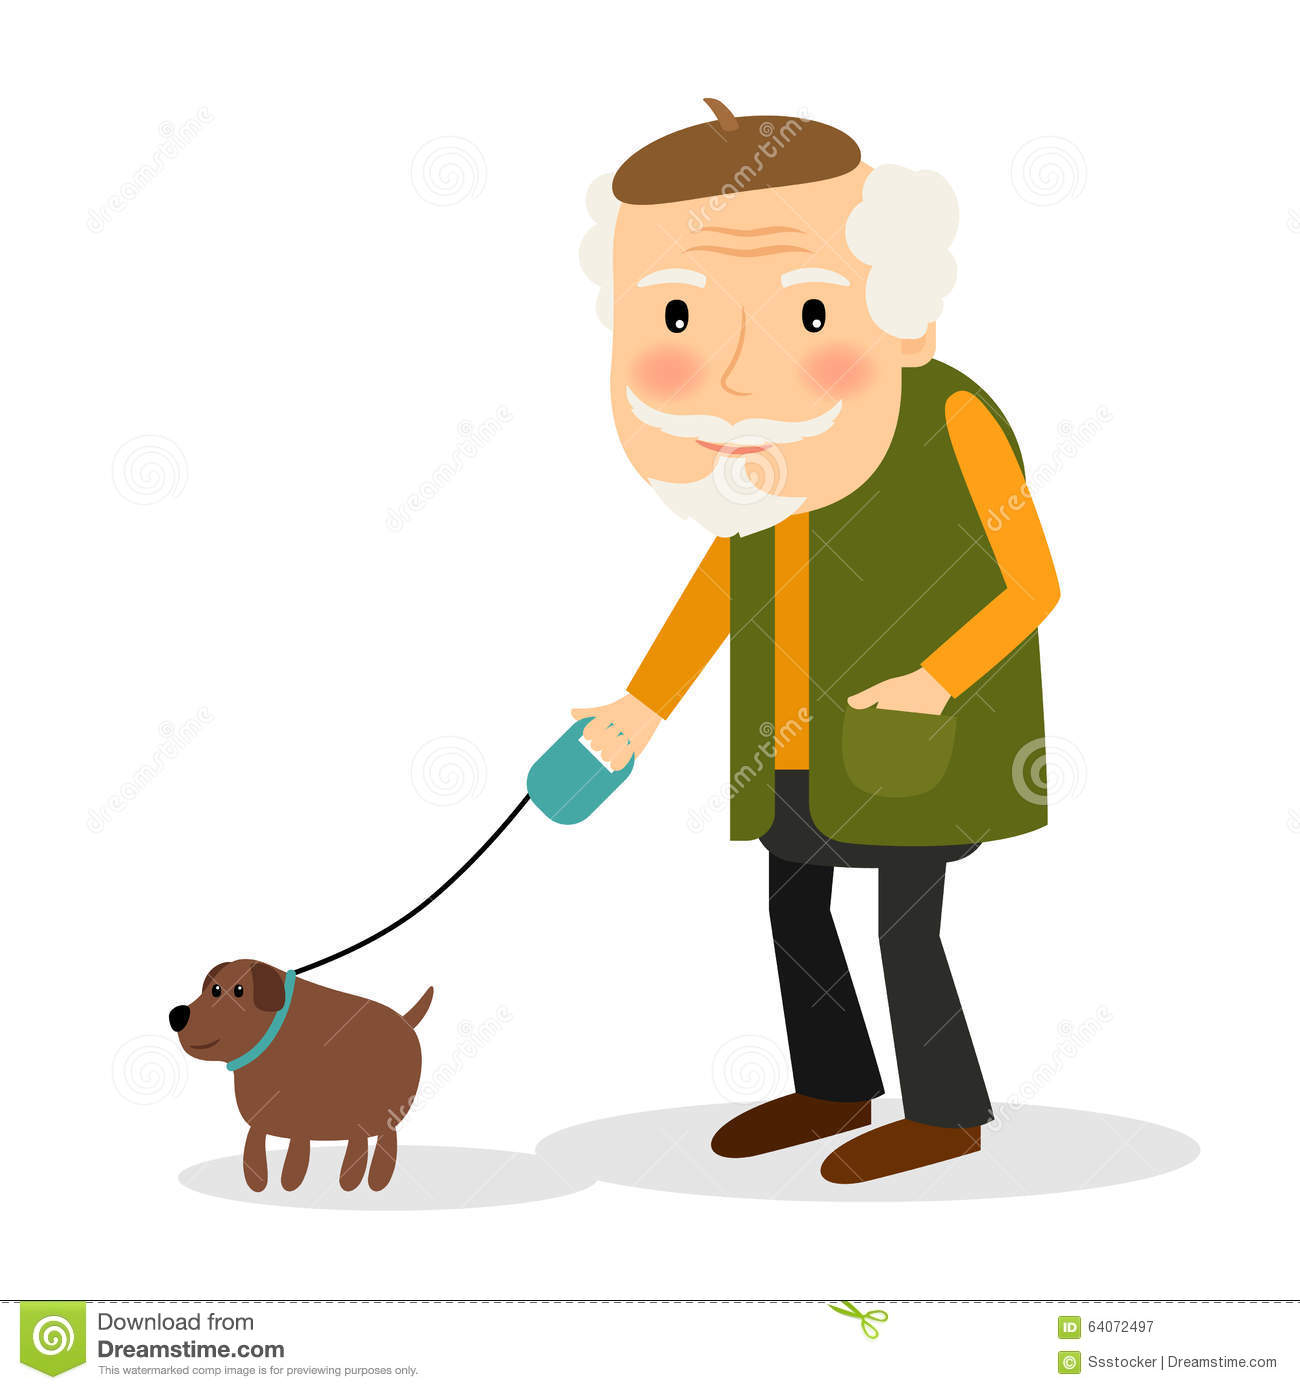 Old man and dog clipart.